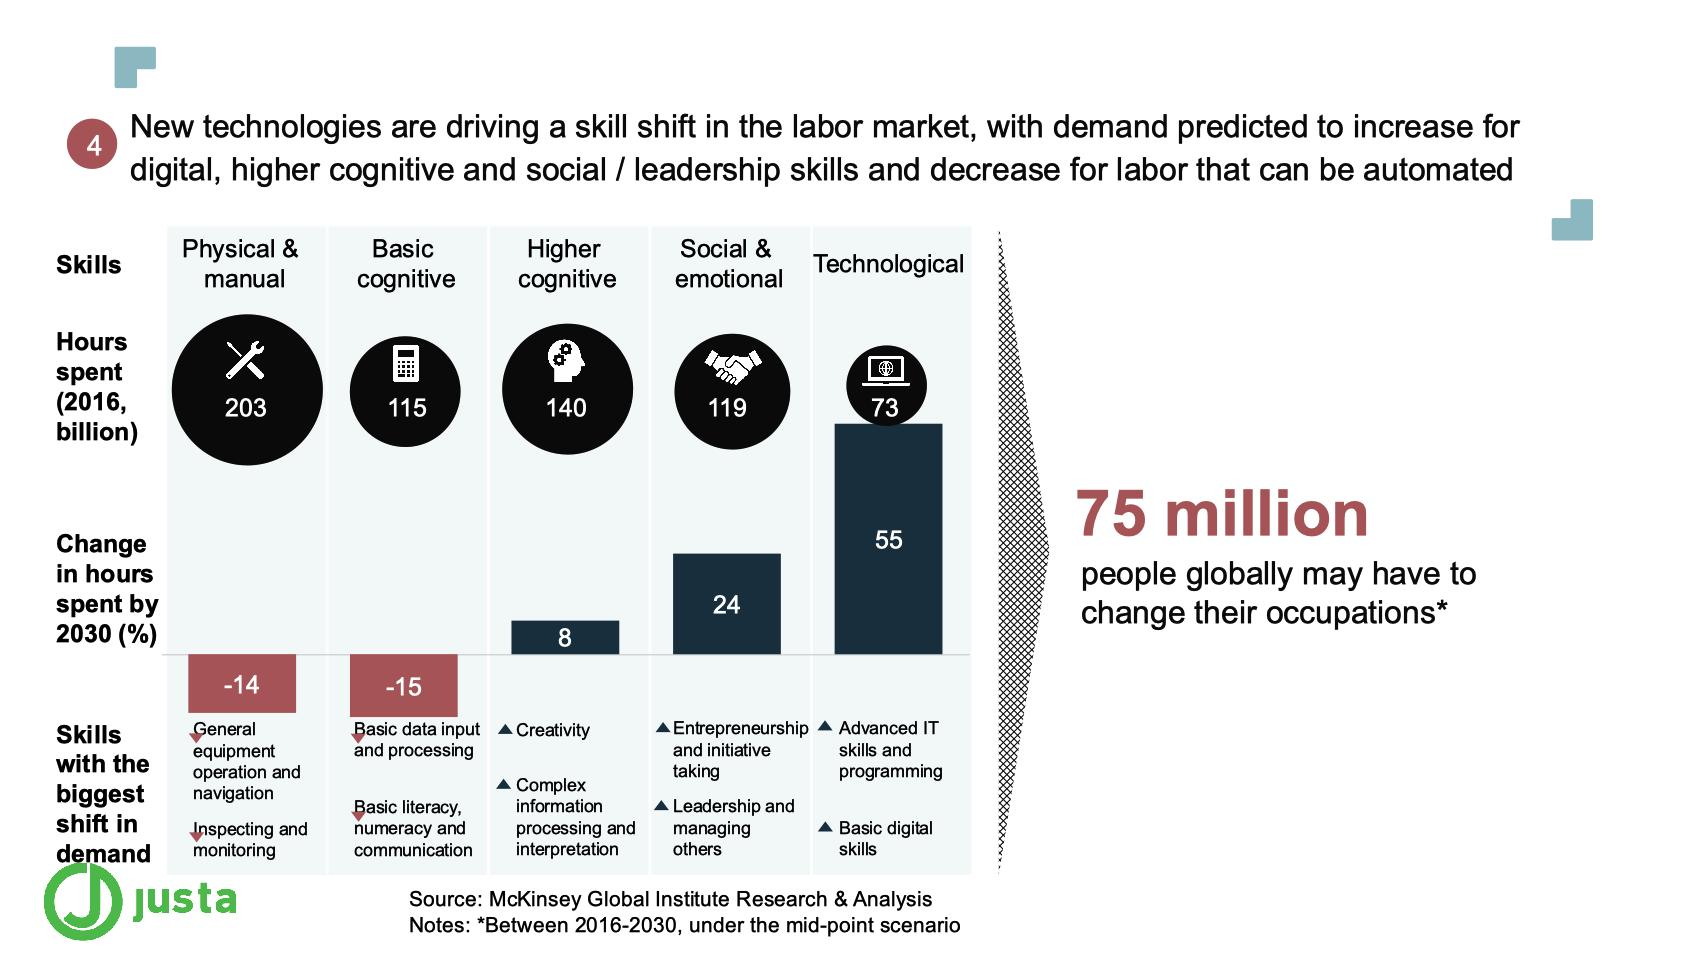 New technologies are driving a skill shift in the labor market, with demand predicted to increase for digital, higher cognitive and social / leadership skills and decrease for labor that can be automated